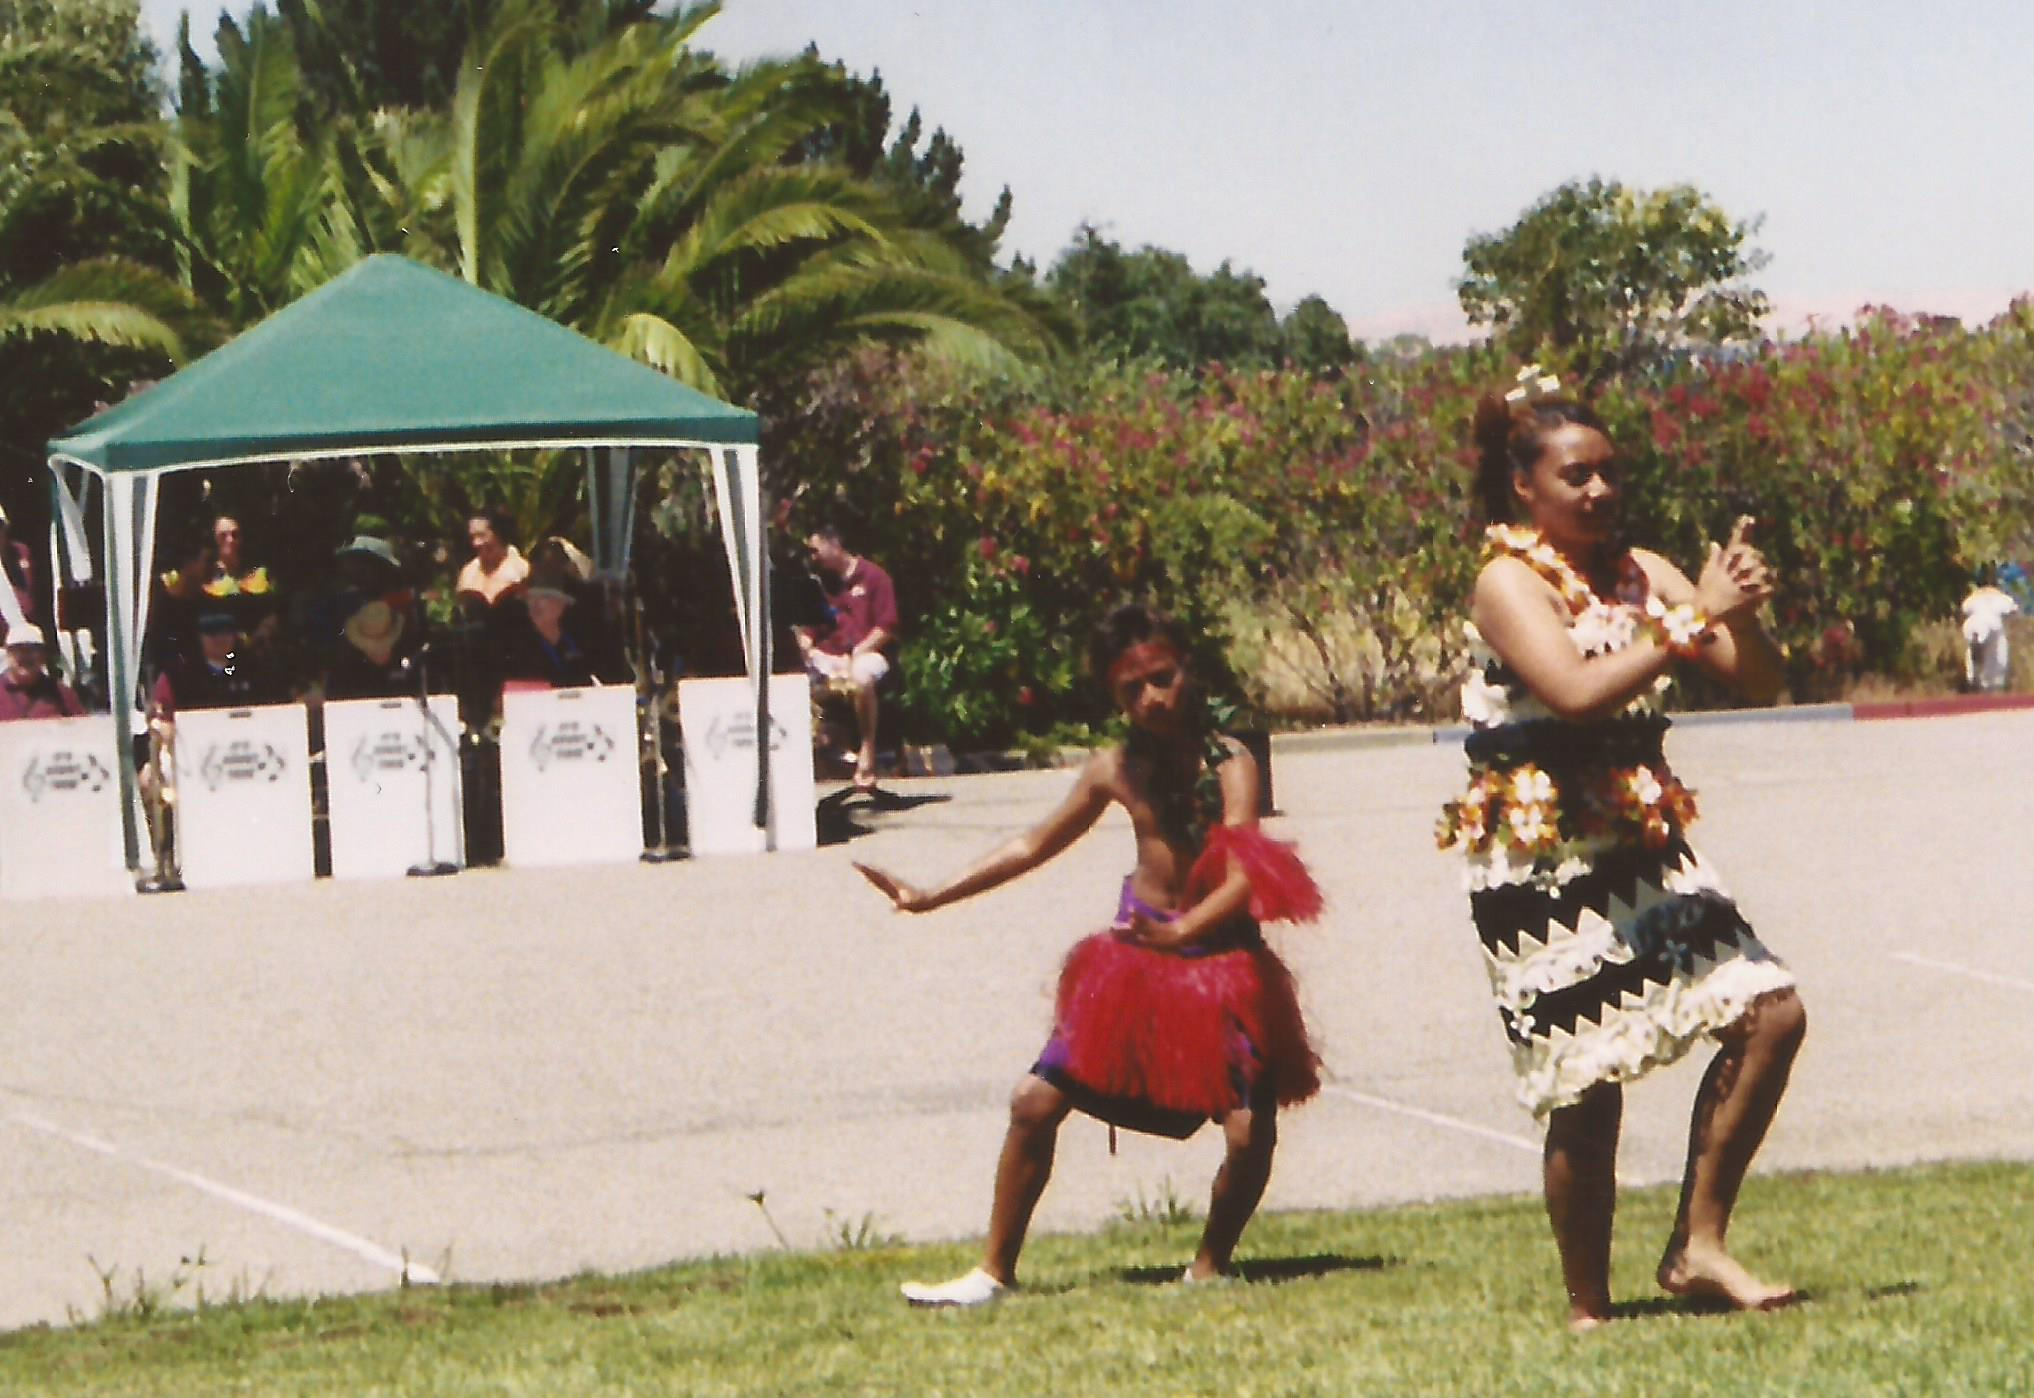 Tongan Dance on Lawn.jpg